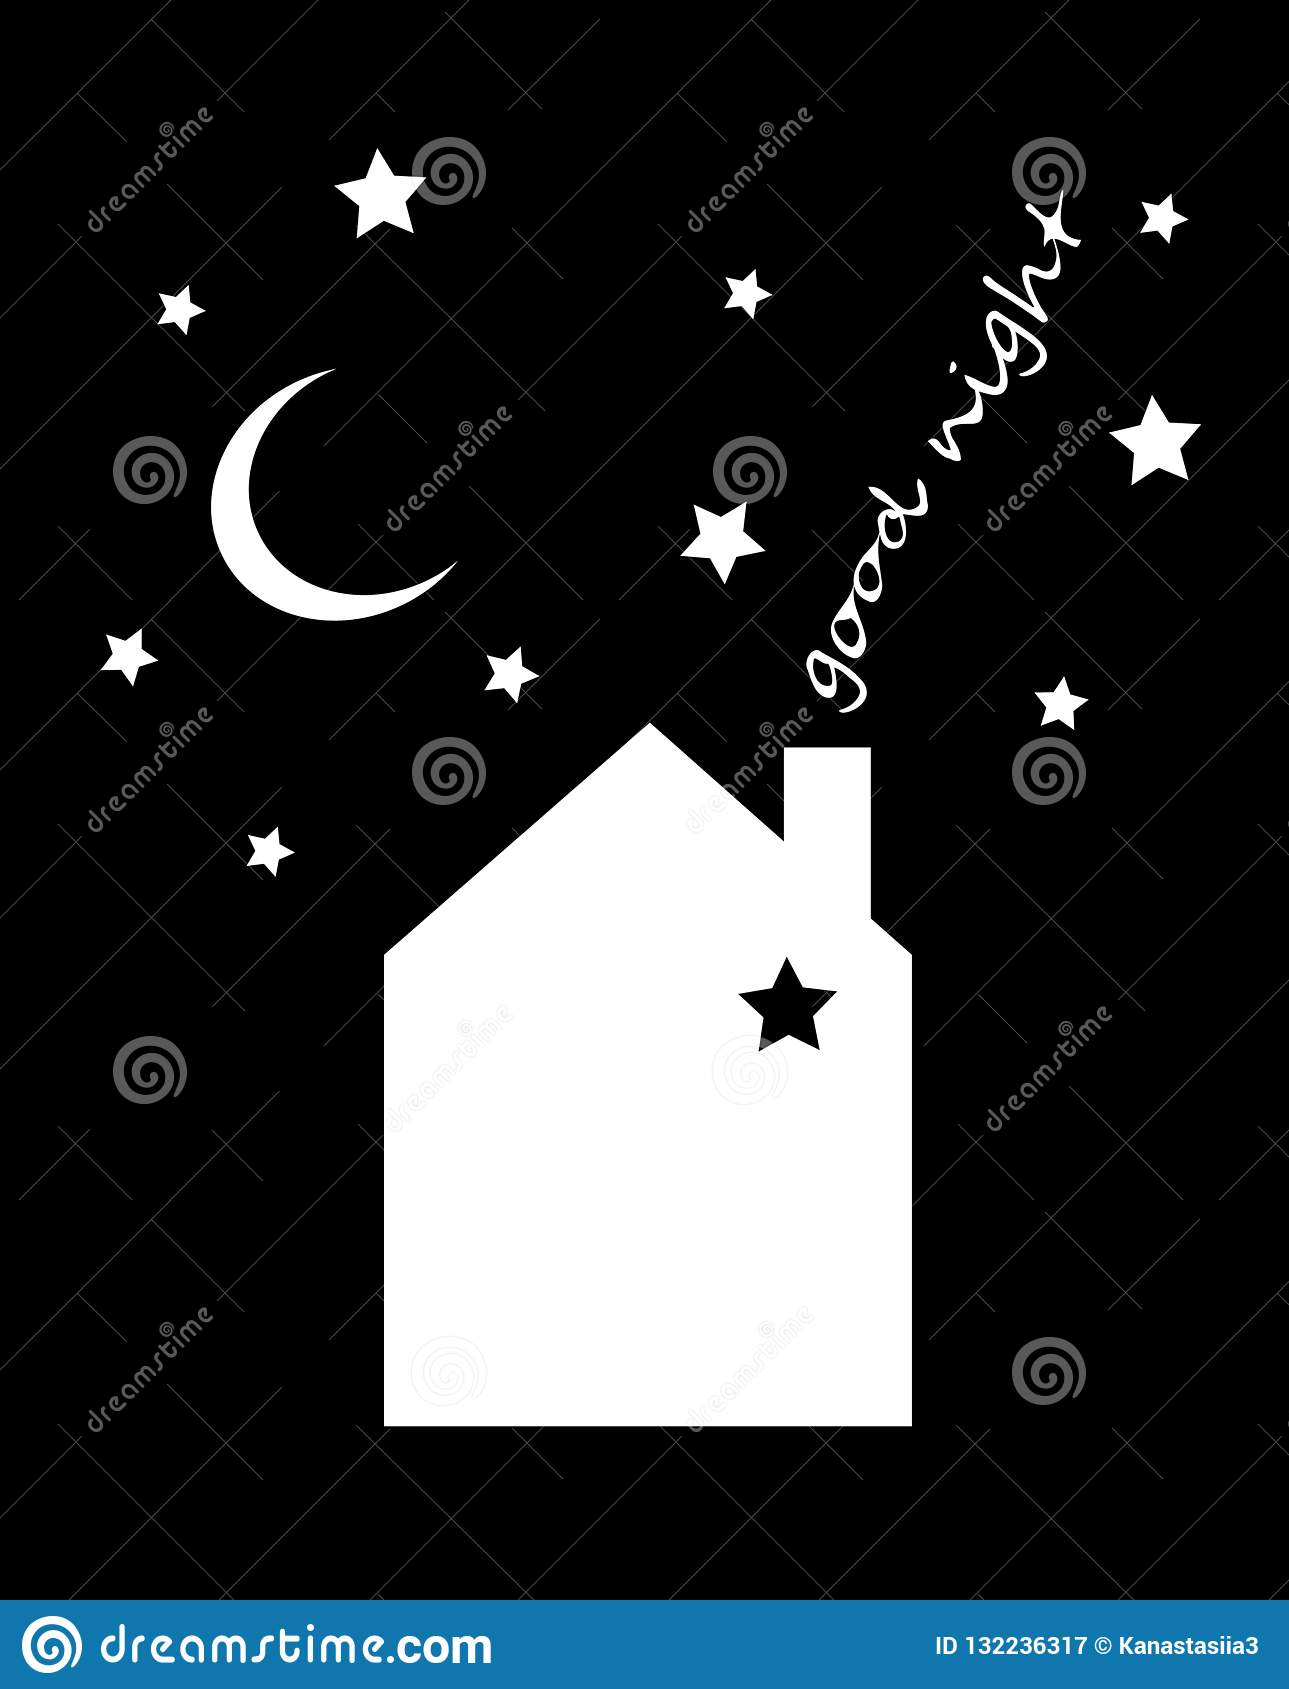 Vector illustration of night time nature landscape with house, sky, falling stars and inscription `Good night`.